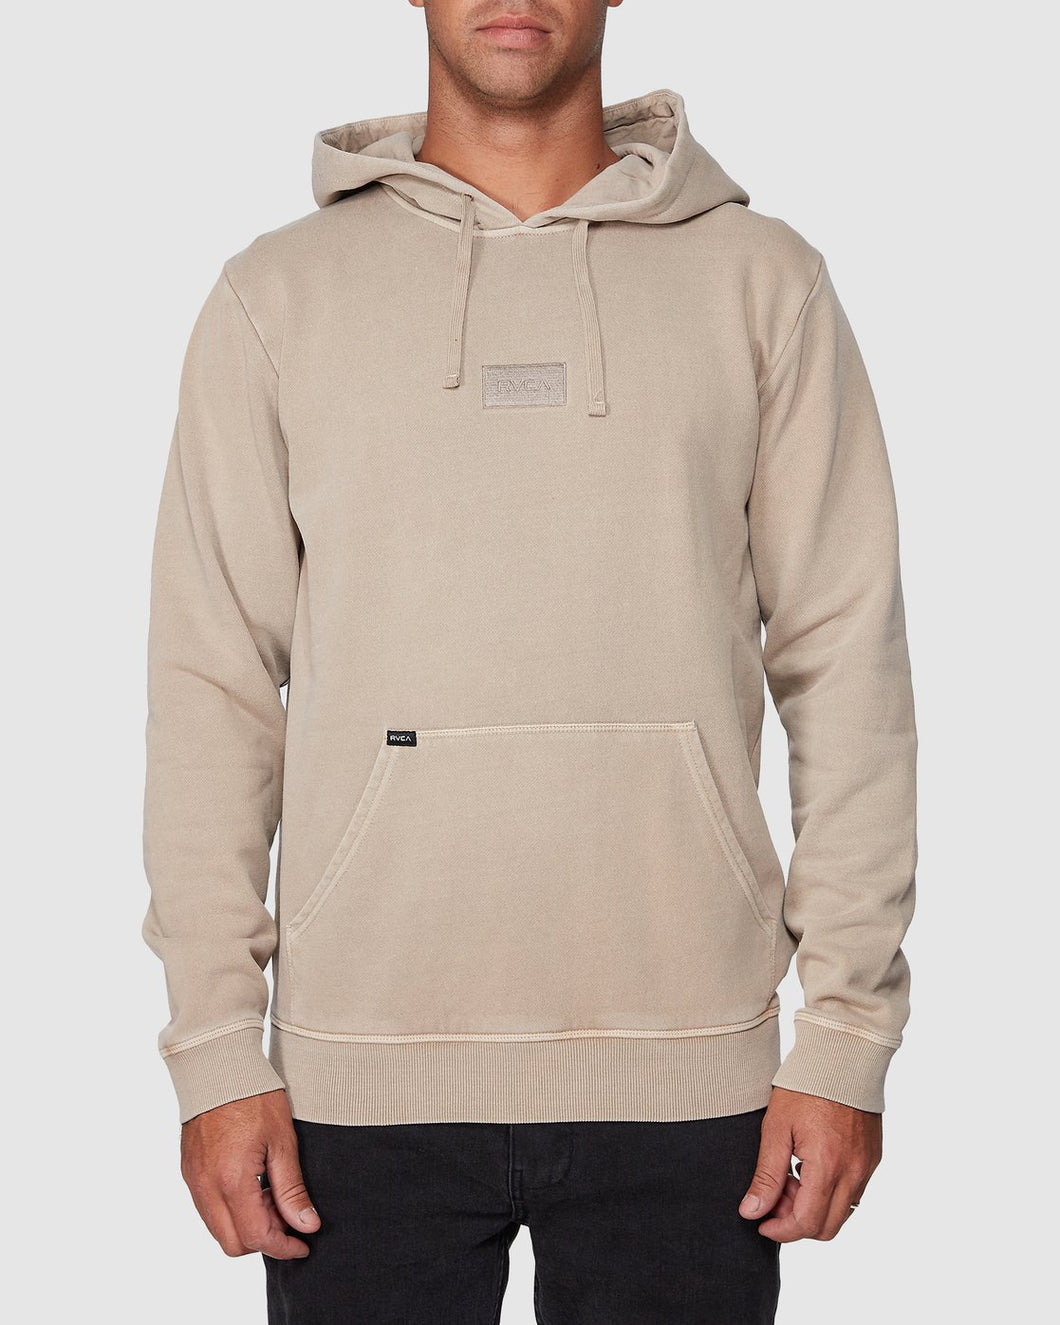 The RVCA Focus Hood